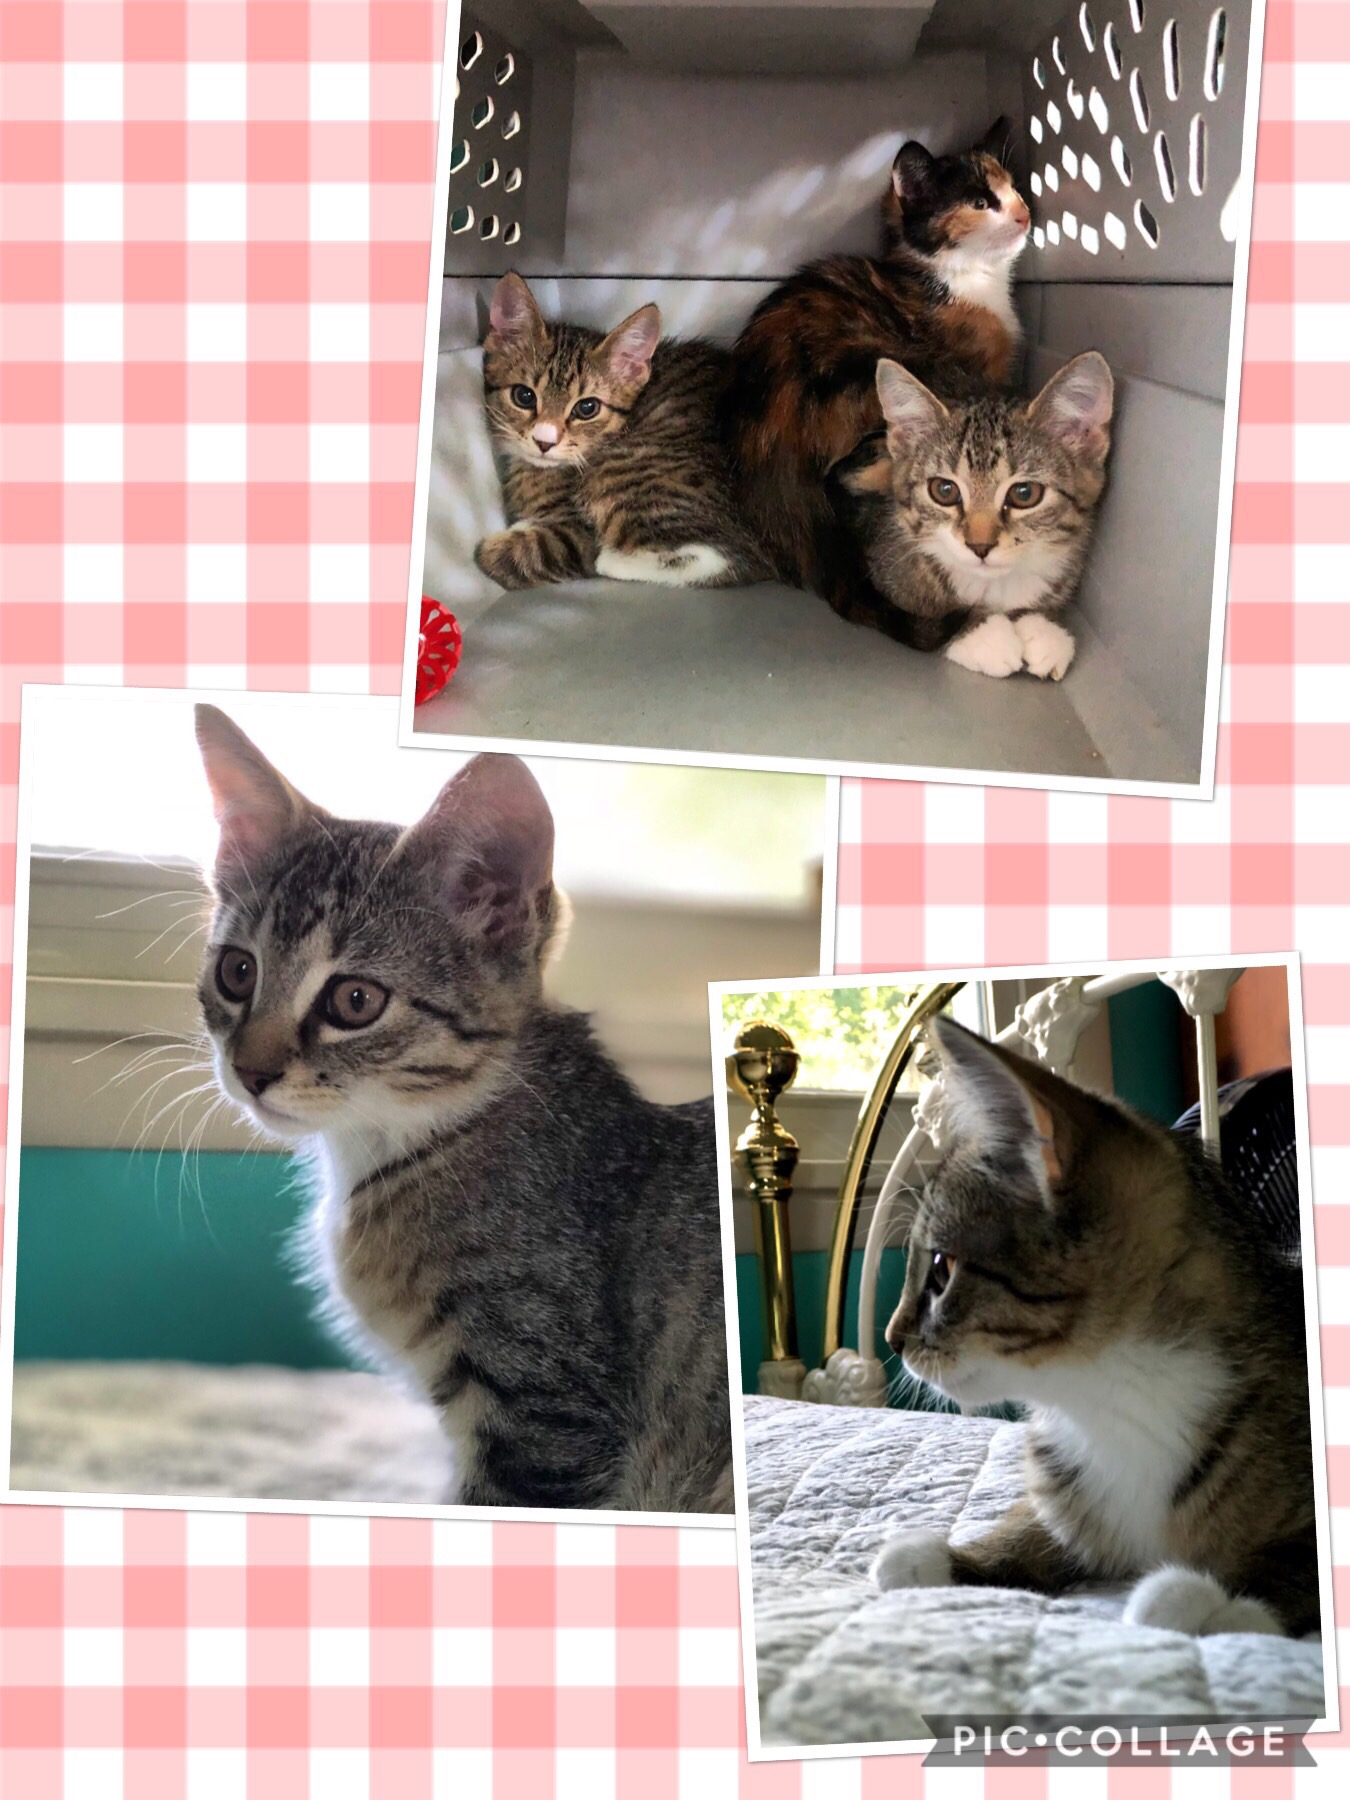 Kitten collage